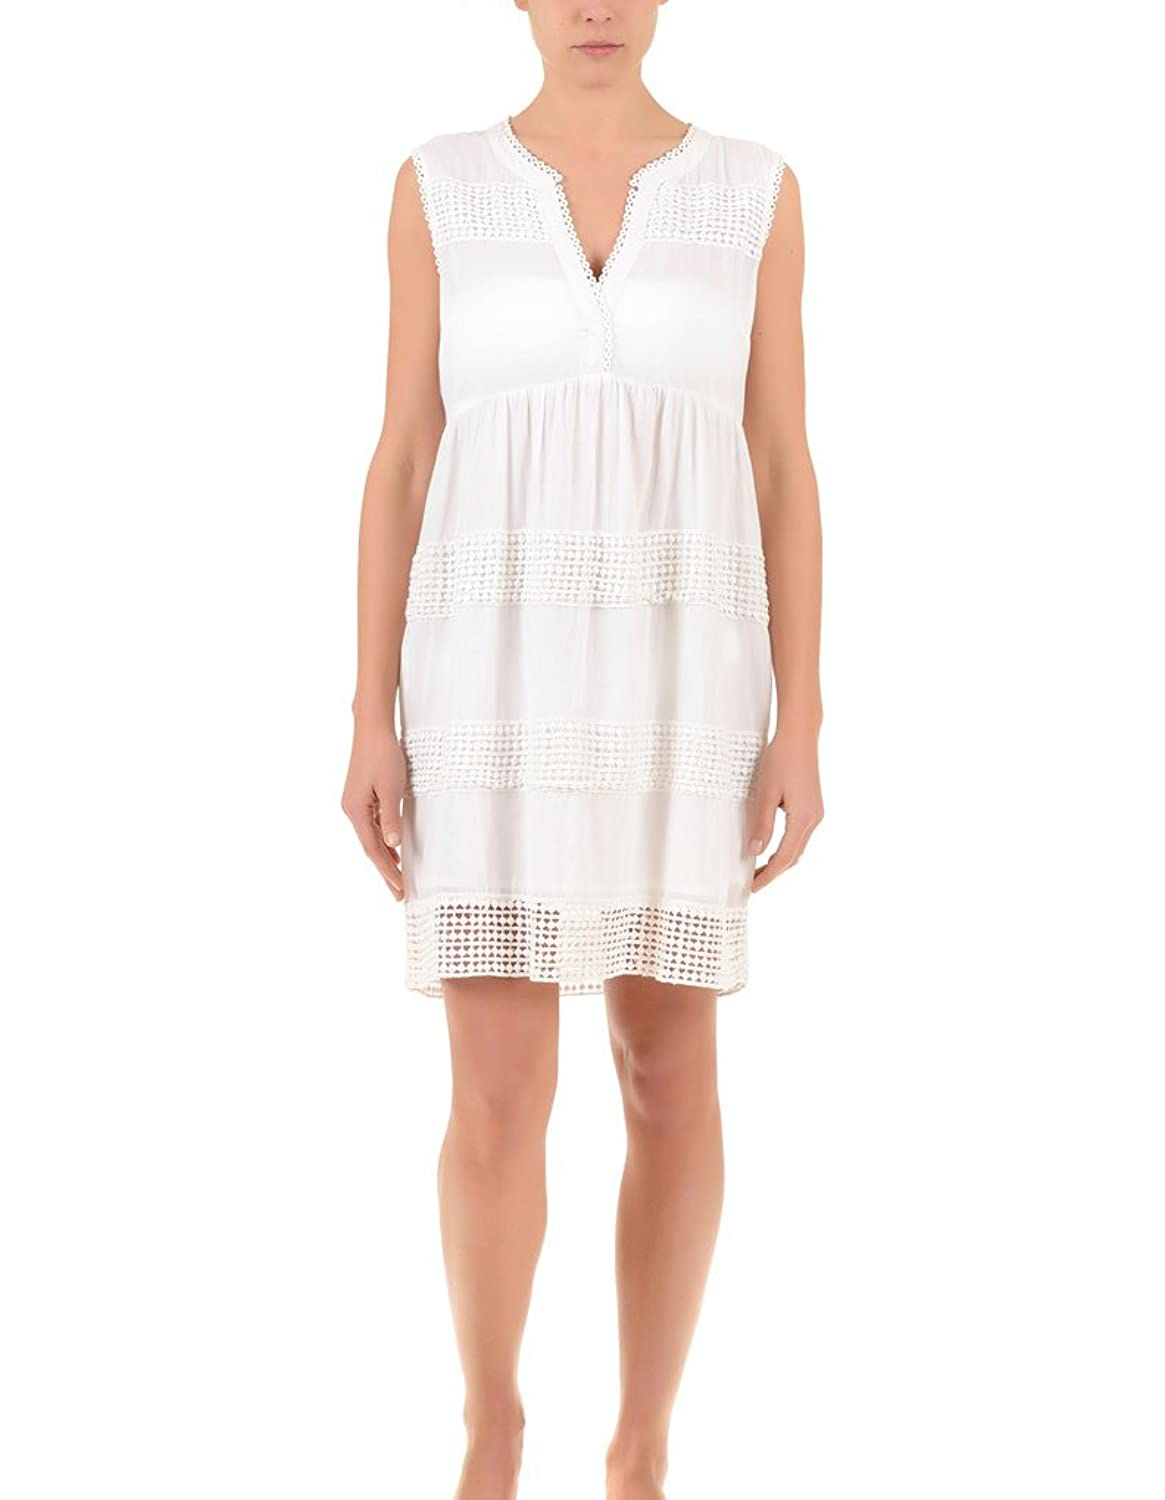 Iconique IC7-013 Women's White Embroidered Cotton Beach Dress